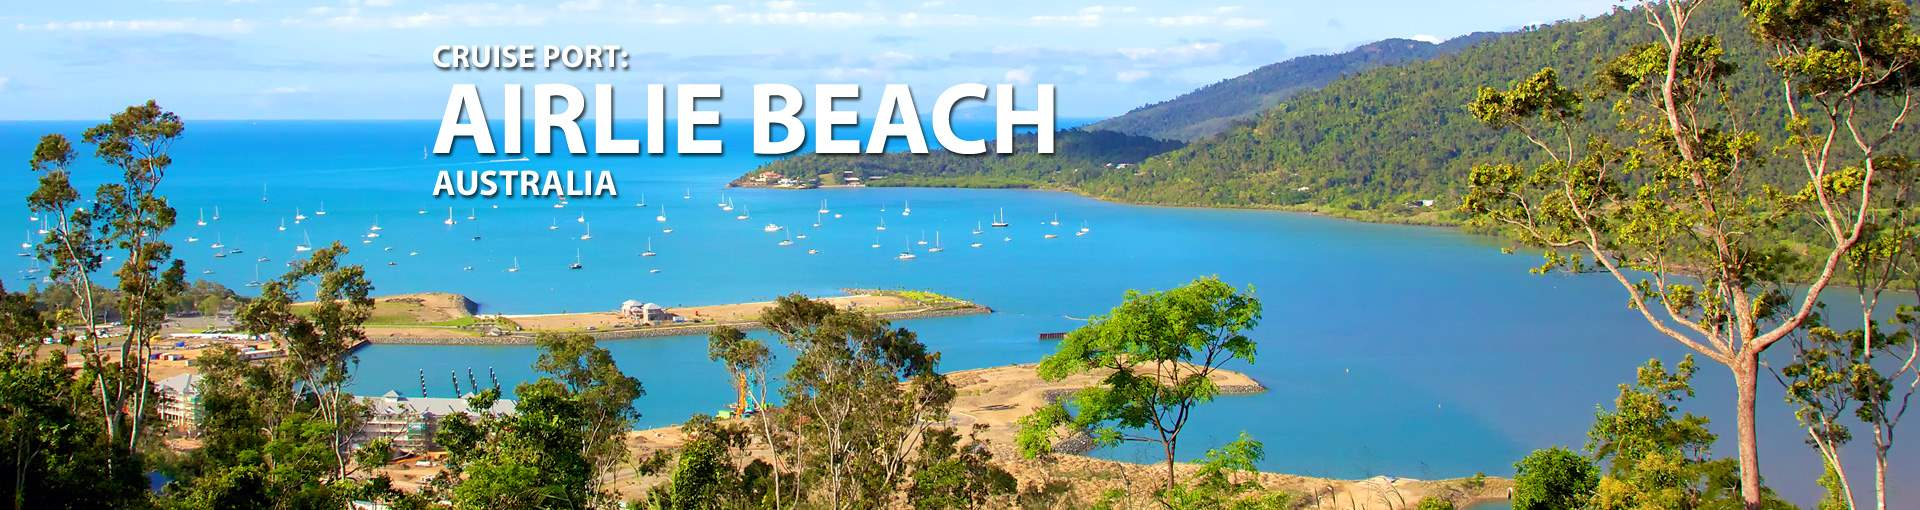 Cruises to Airlie Beach, Australia